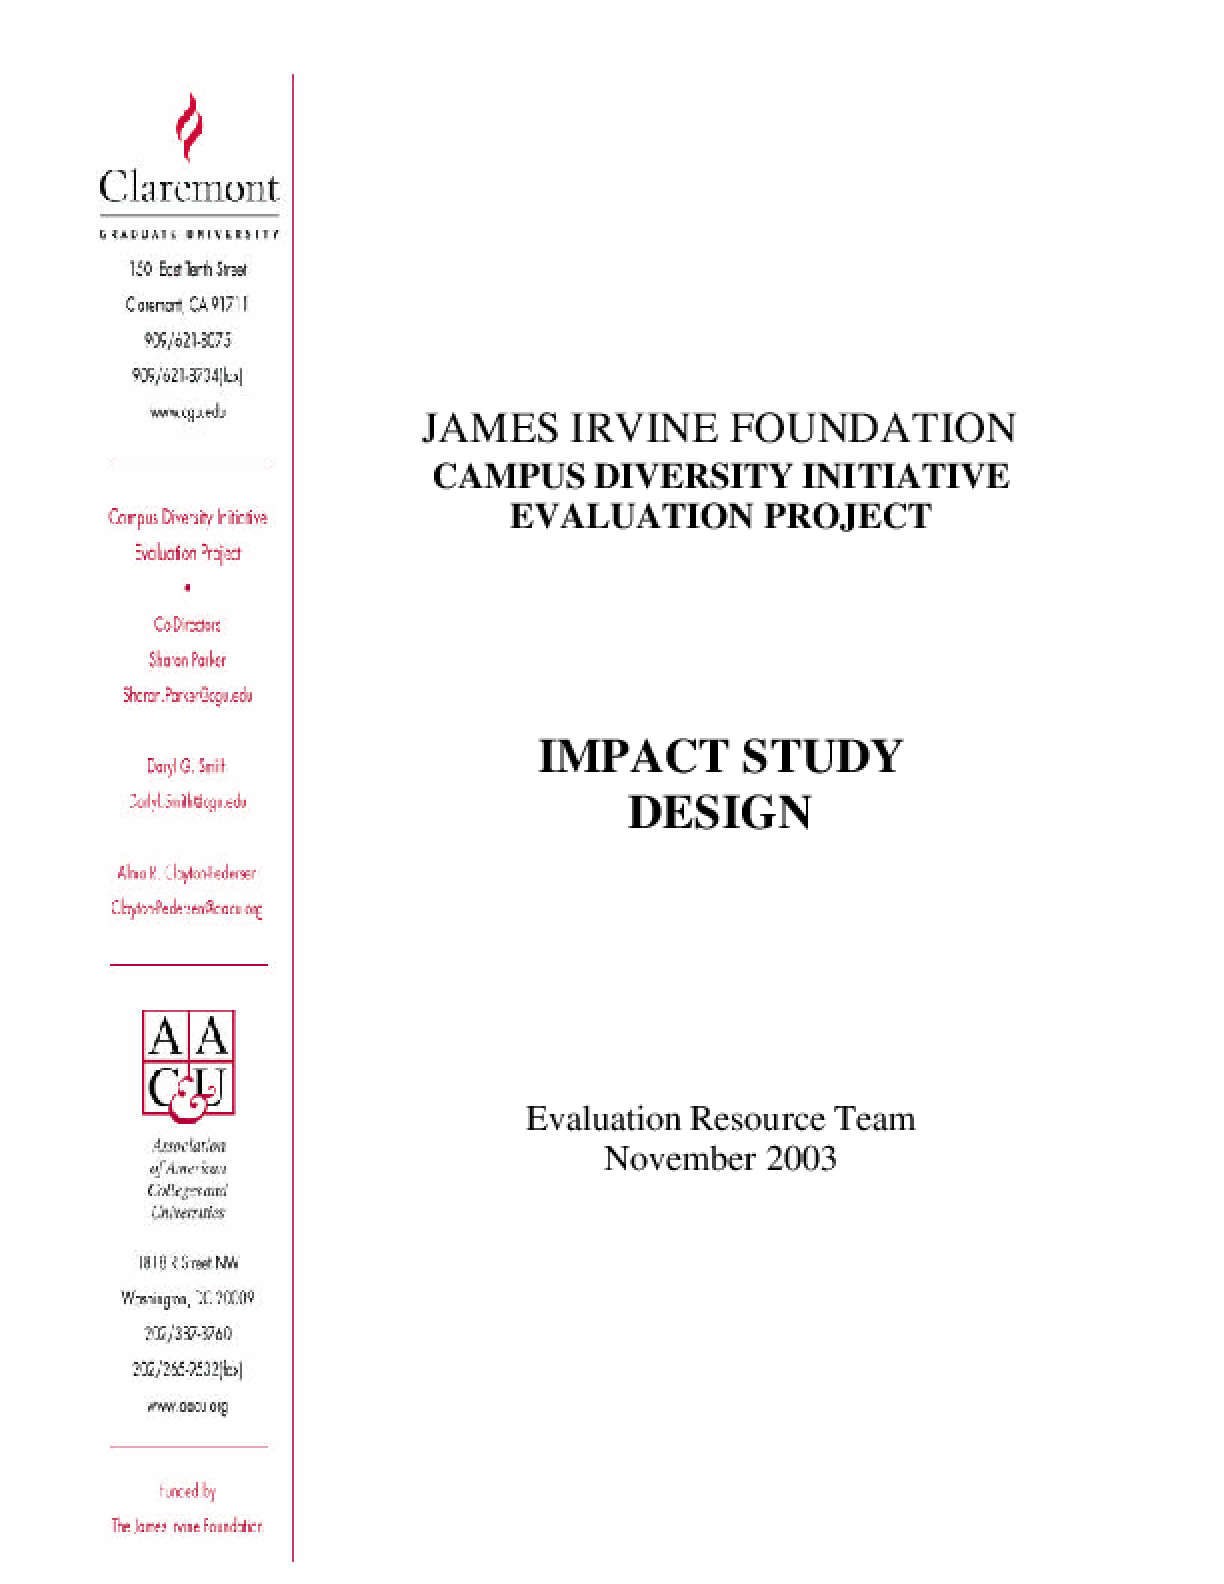 The Campus Diversity Initiative: Impact Study